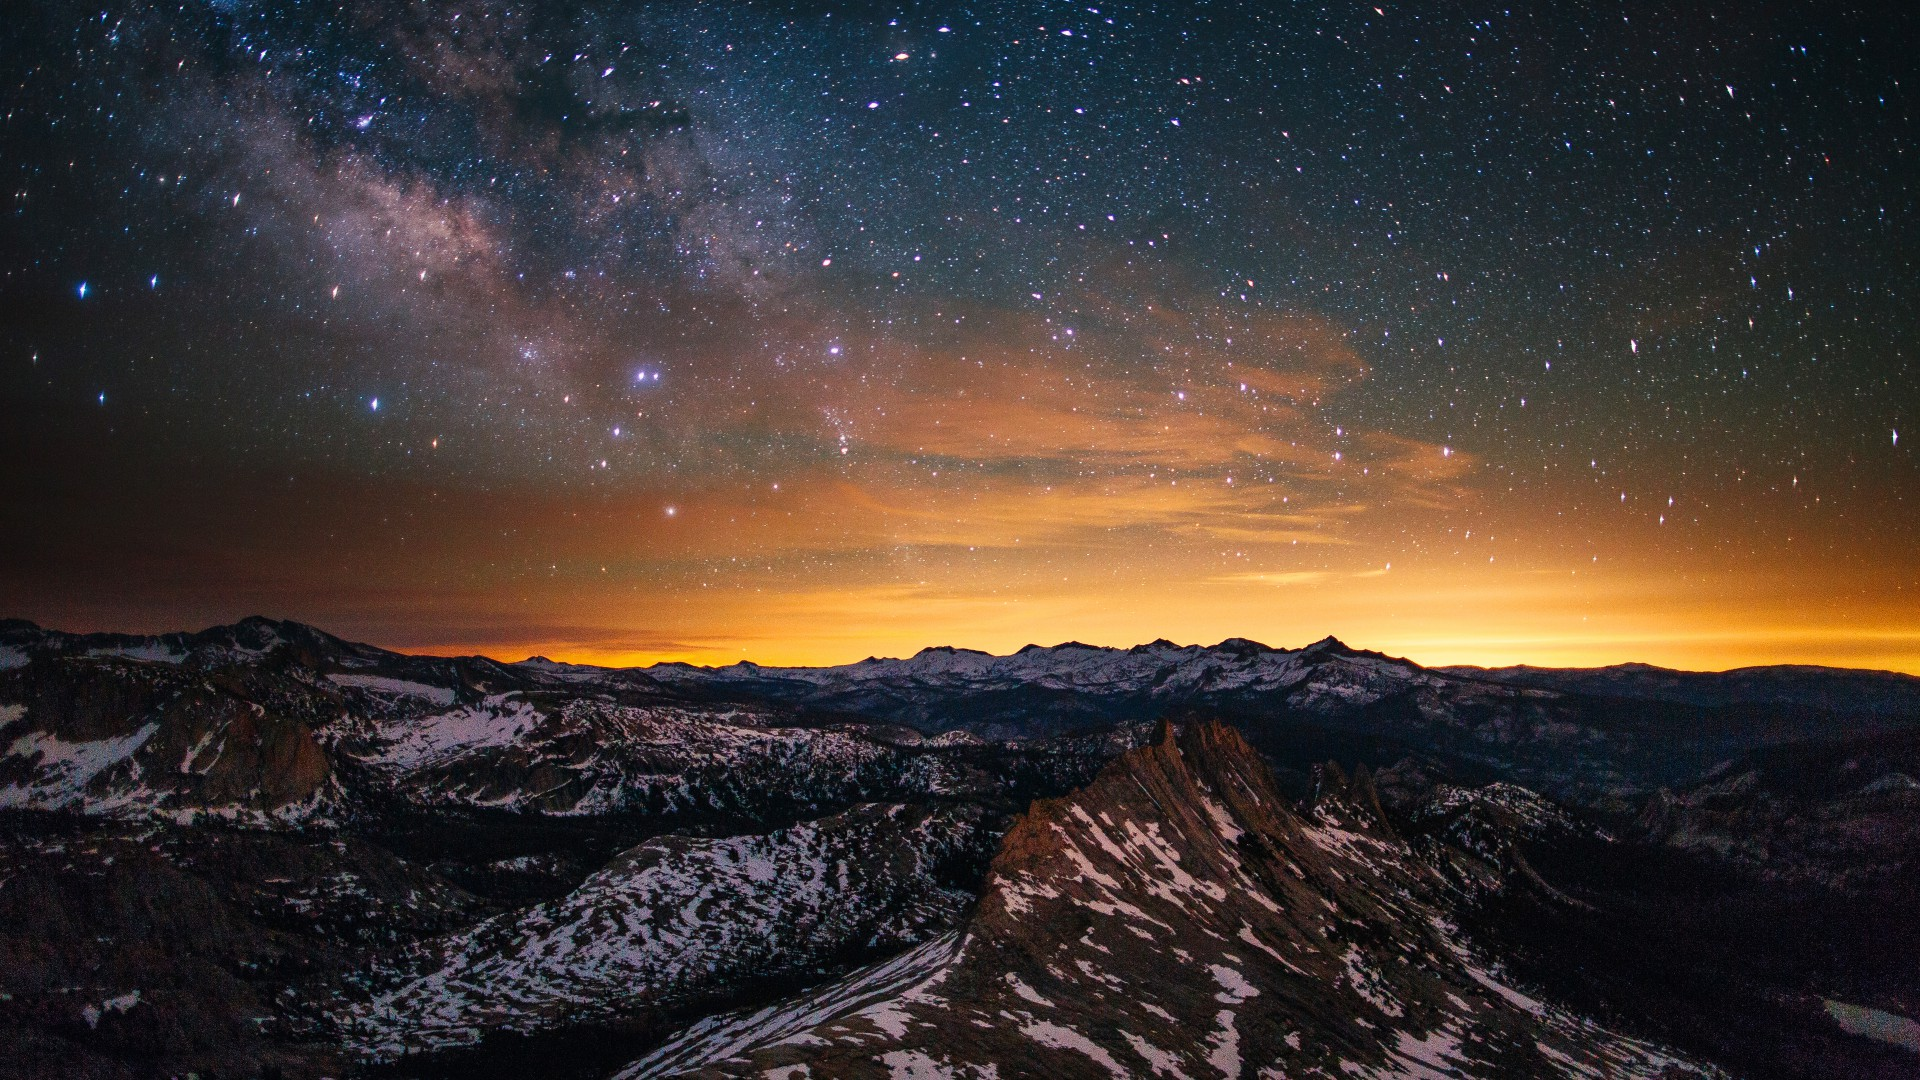 Yosemite, 5k wallpapers, forest, stars, sunset, OSX, apple, mountains